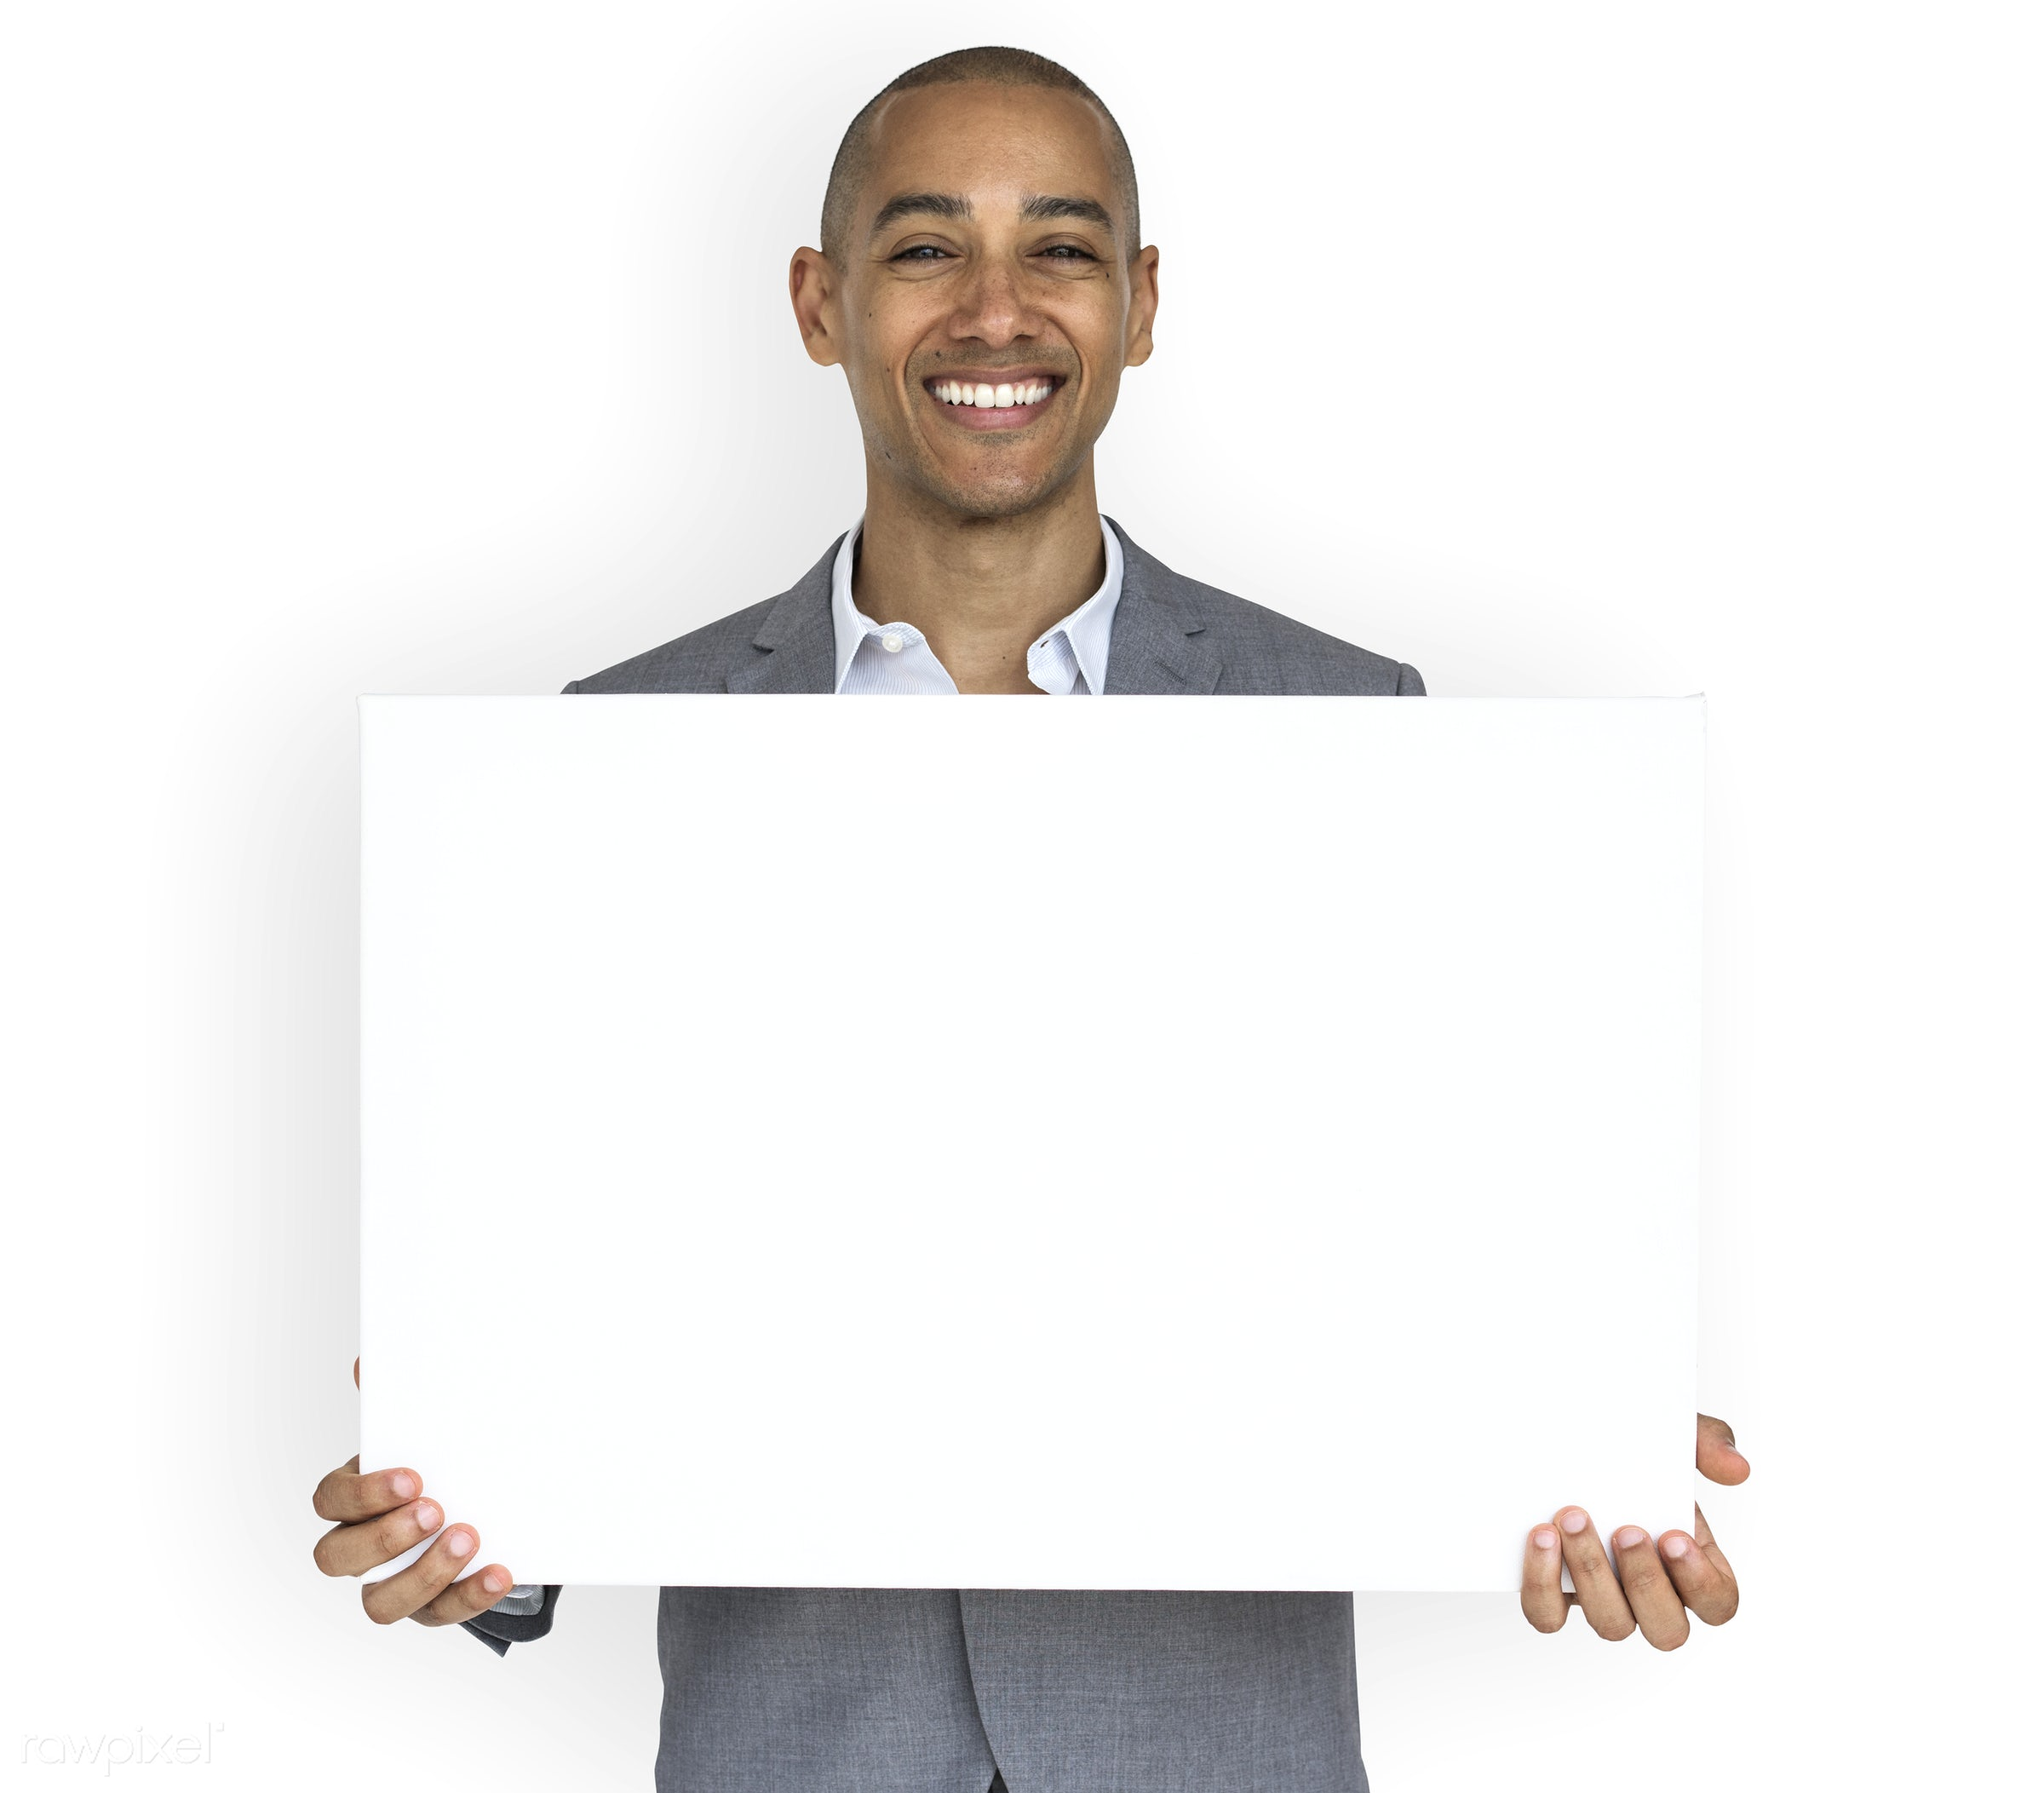 studio, expression, copy space, person, holding, joy, isolated on white, people, business, placard, businessman, happy,...